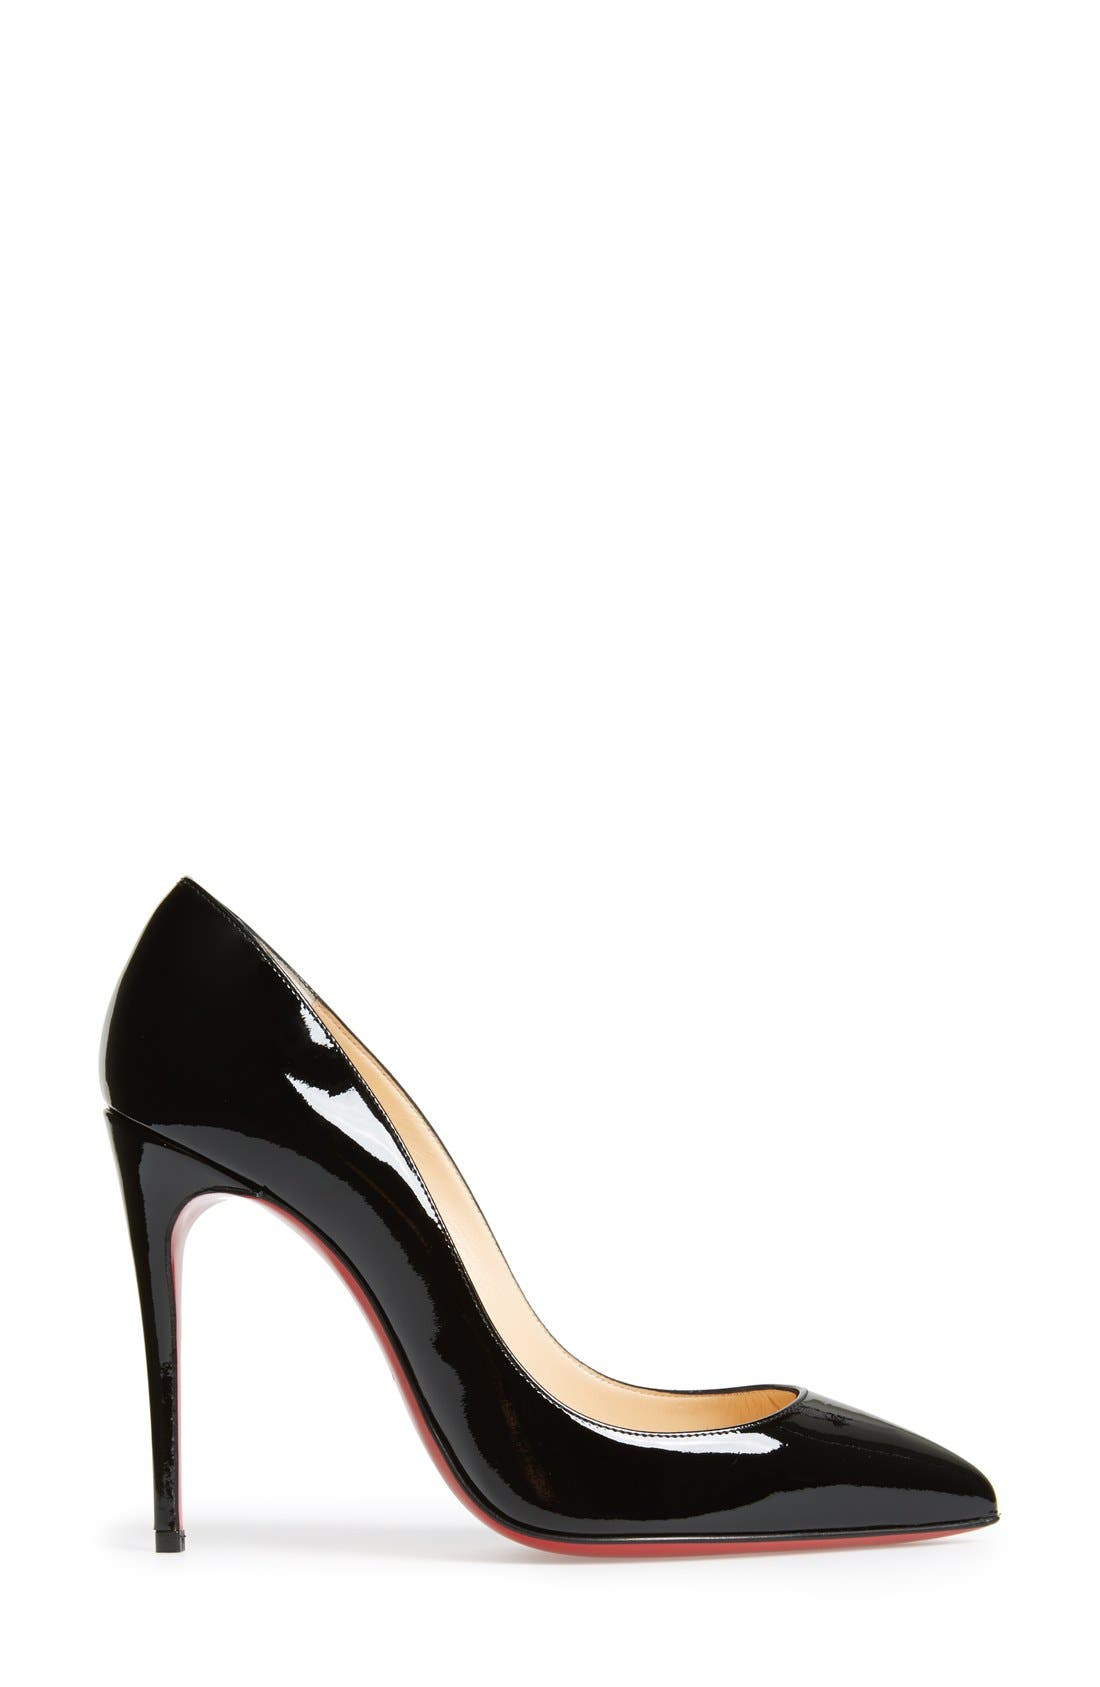 CHRISTIAN LOUBOUTIN,                             Pigalle Follies Pointy Toe Pump,                             Alternate thumbnail 4, color,                             001